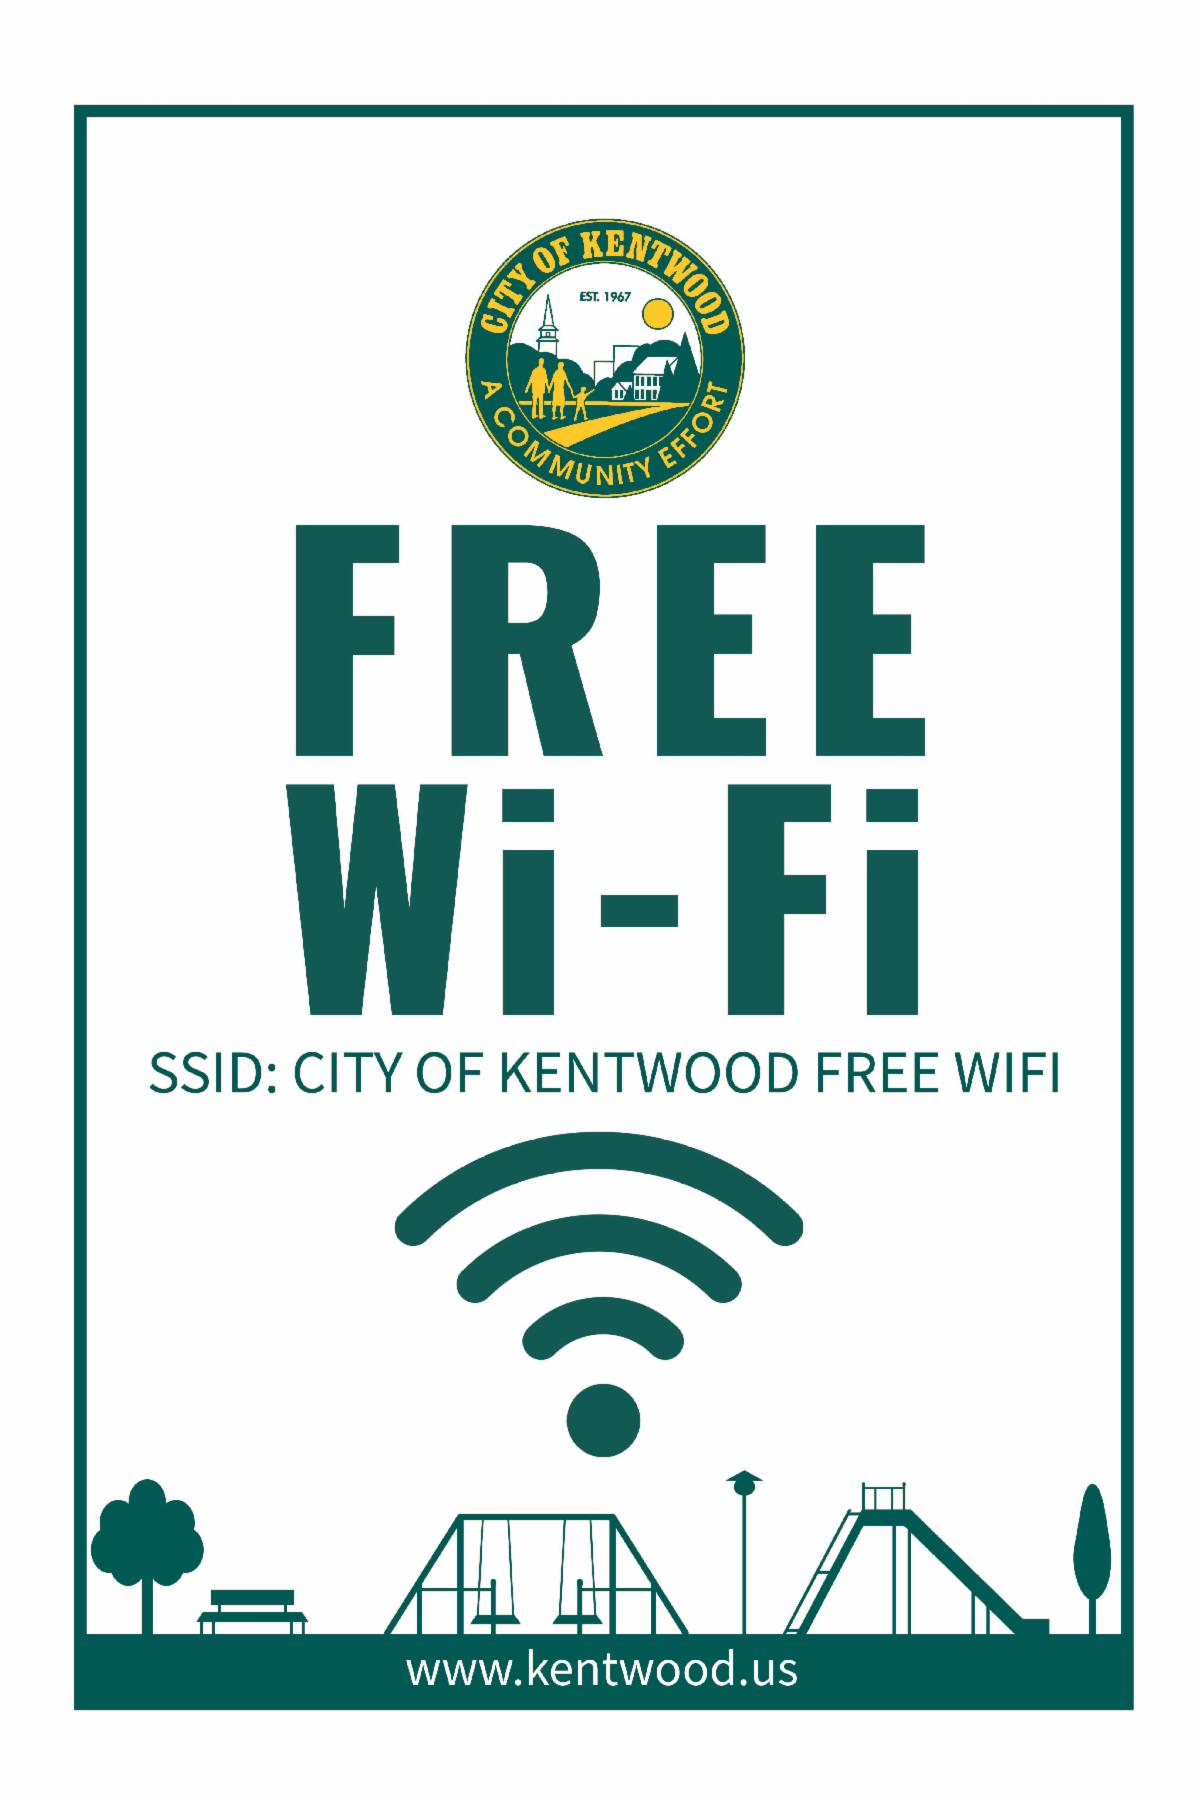 Free Wi-Fi signage for parks